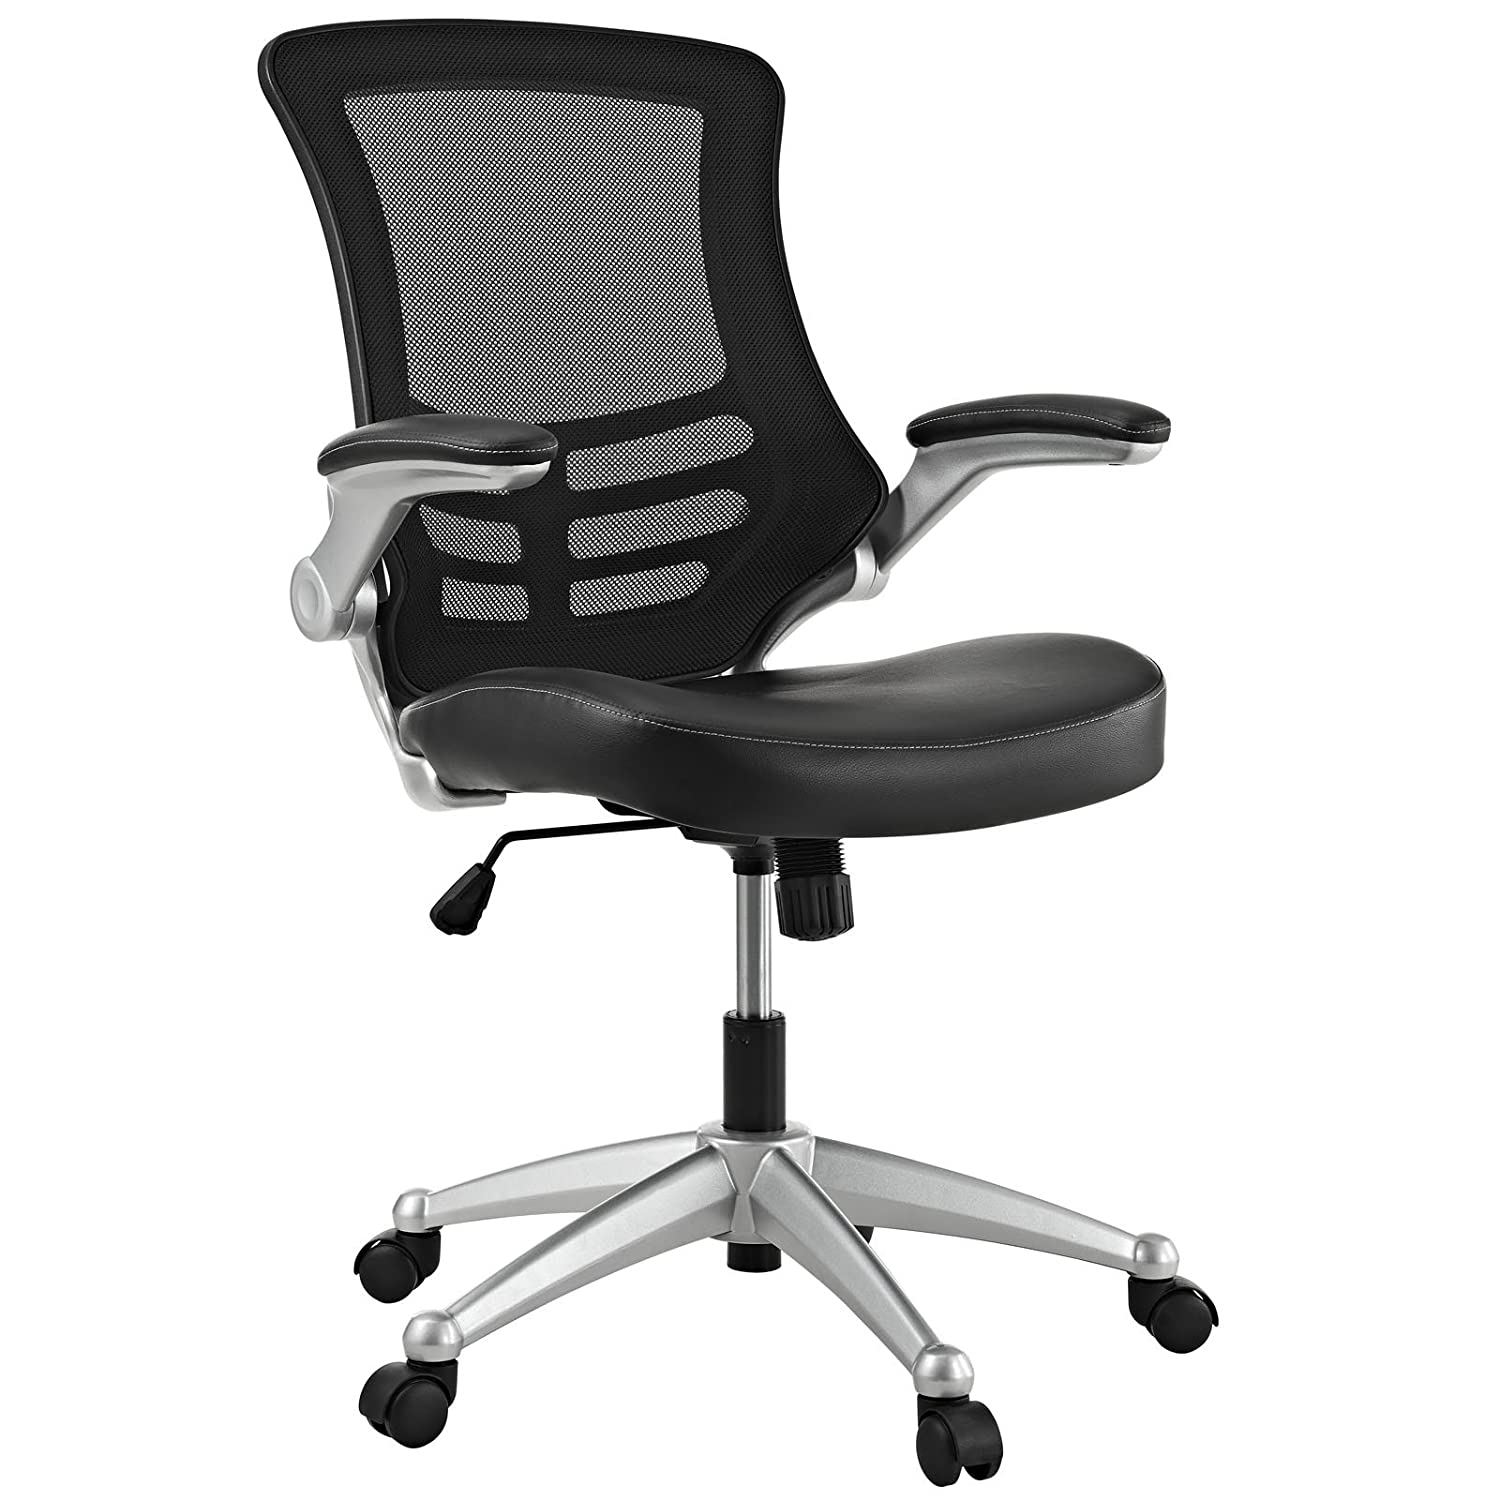 Black and white office chair - Amazon Com Modway Attainment Office Chair With Black Mesh Back And Leatherette Seat Kitchen Dining